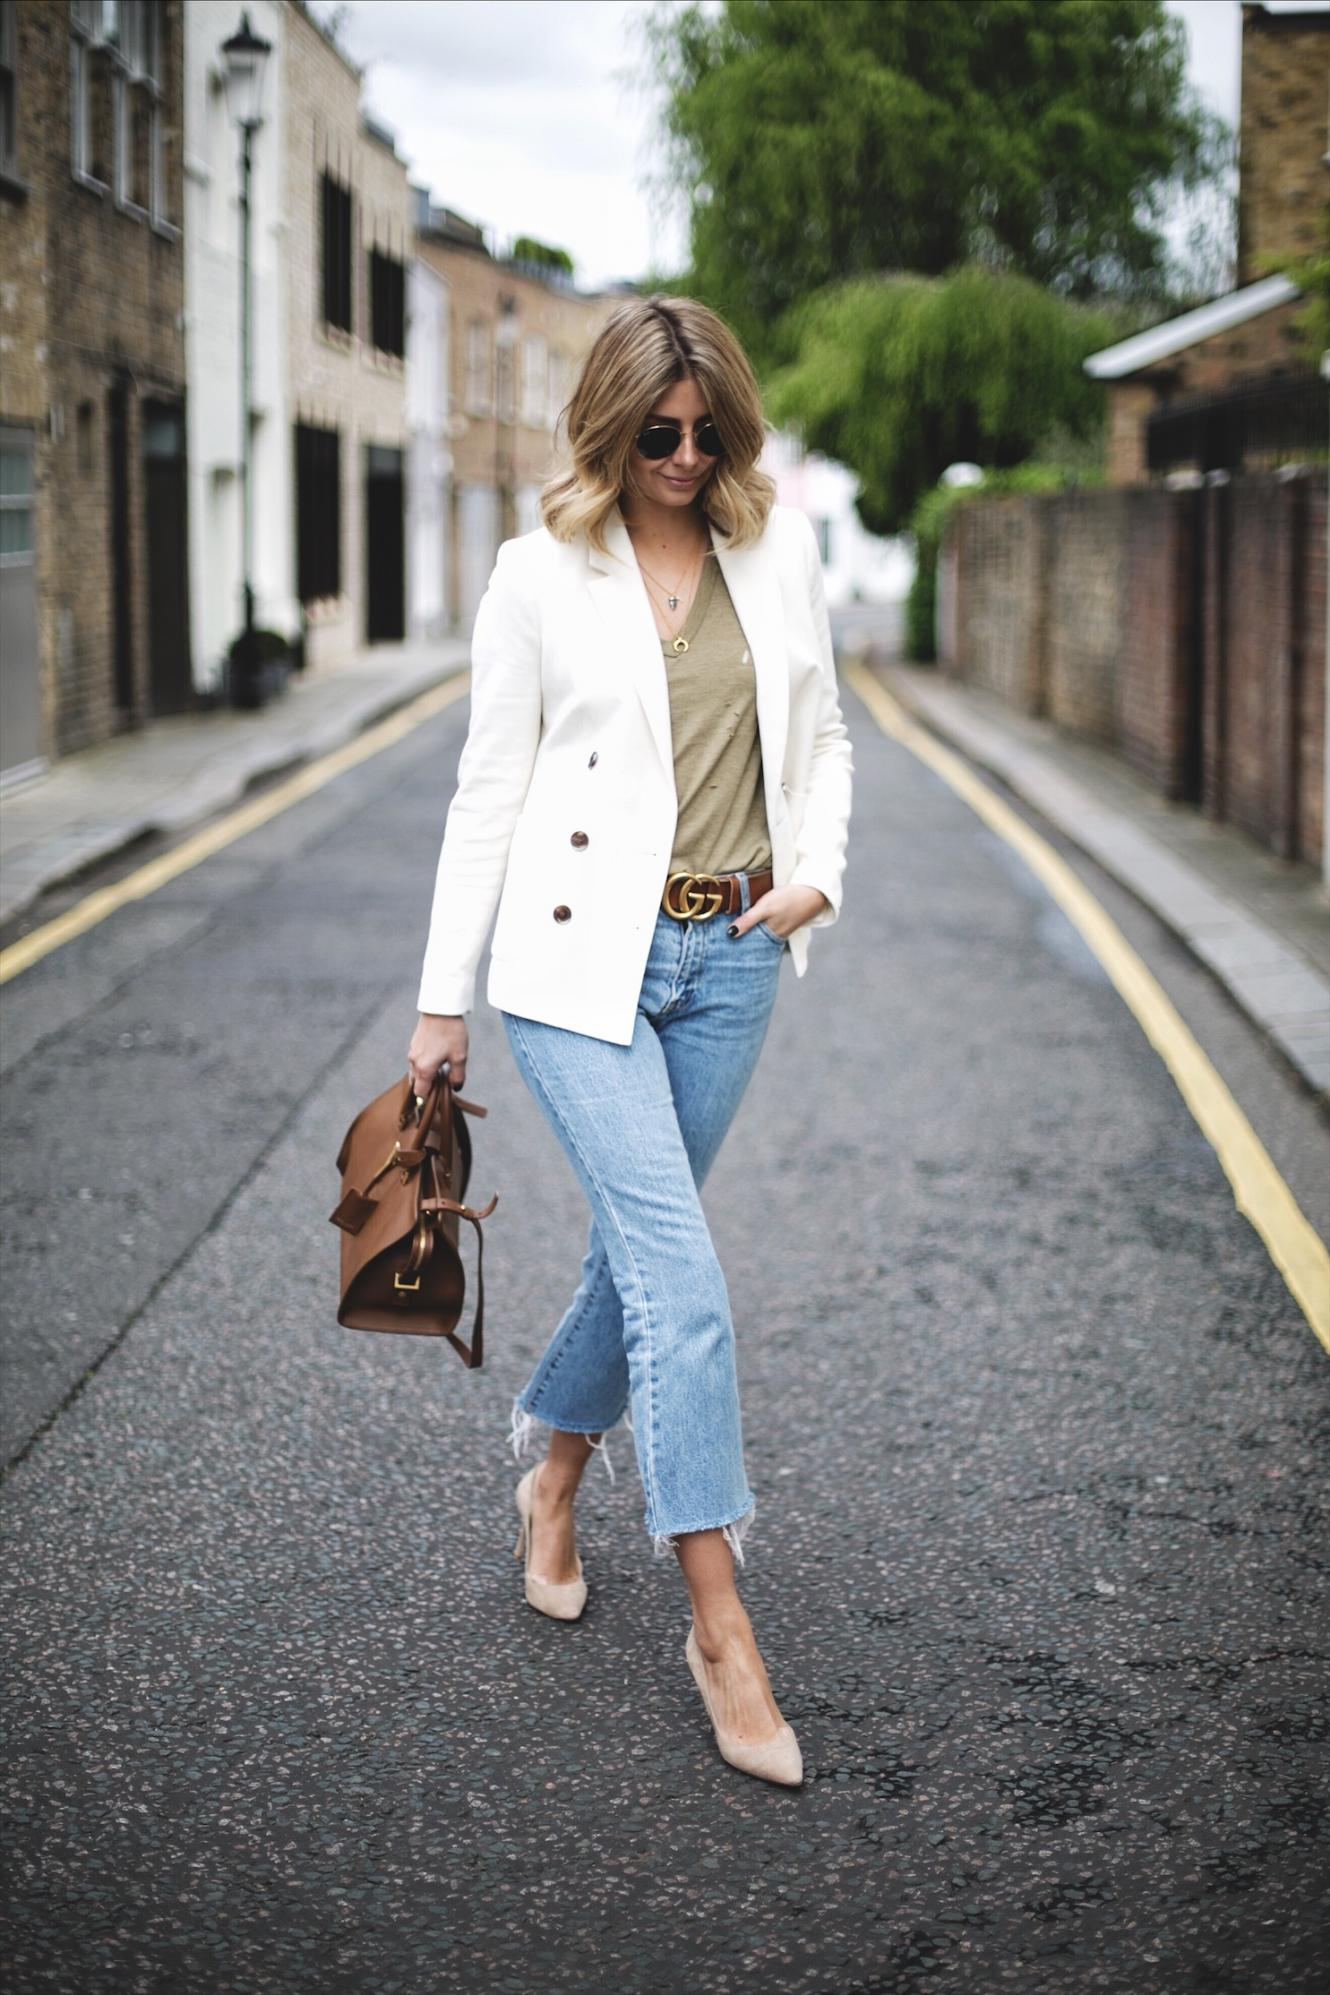 Emma Hill wears off white double breasted blazer, khaki nibbled t-shirt, frayed hem cropped jeans, beige suede Jimmy Choo Romy pumps, YSL Saint Laurent Cabas Chyc in tan leather, Ray Ban round sunglasses, chic spring outfit